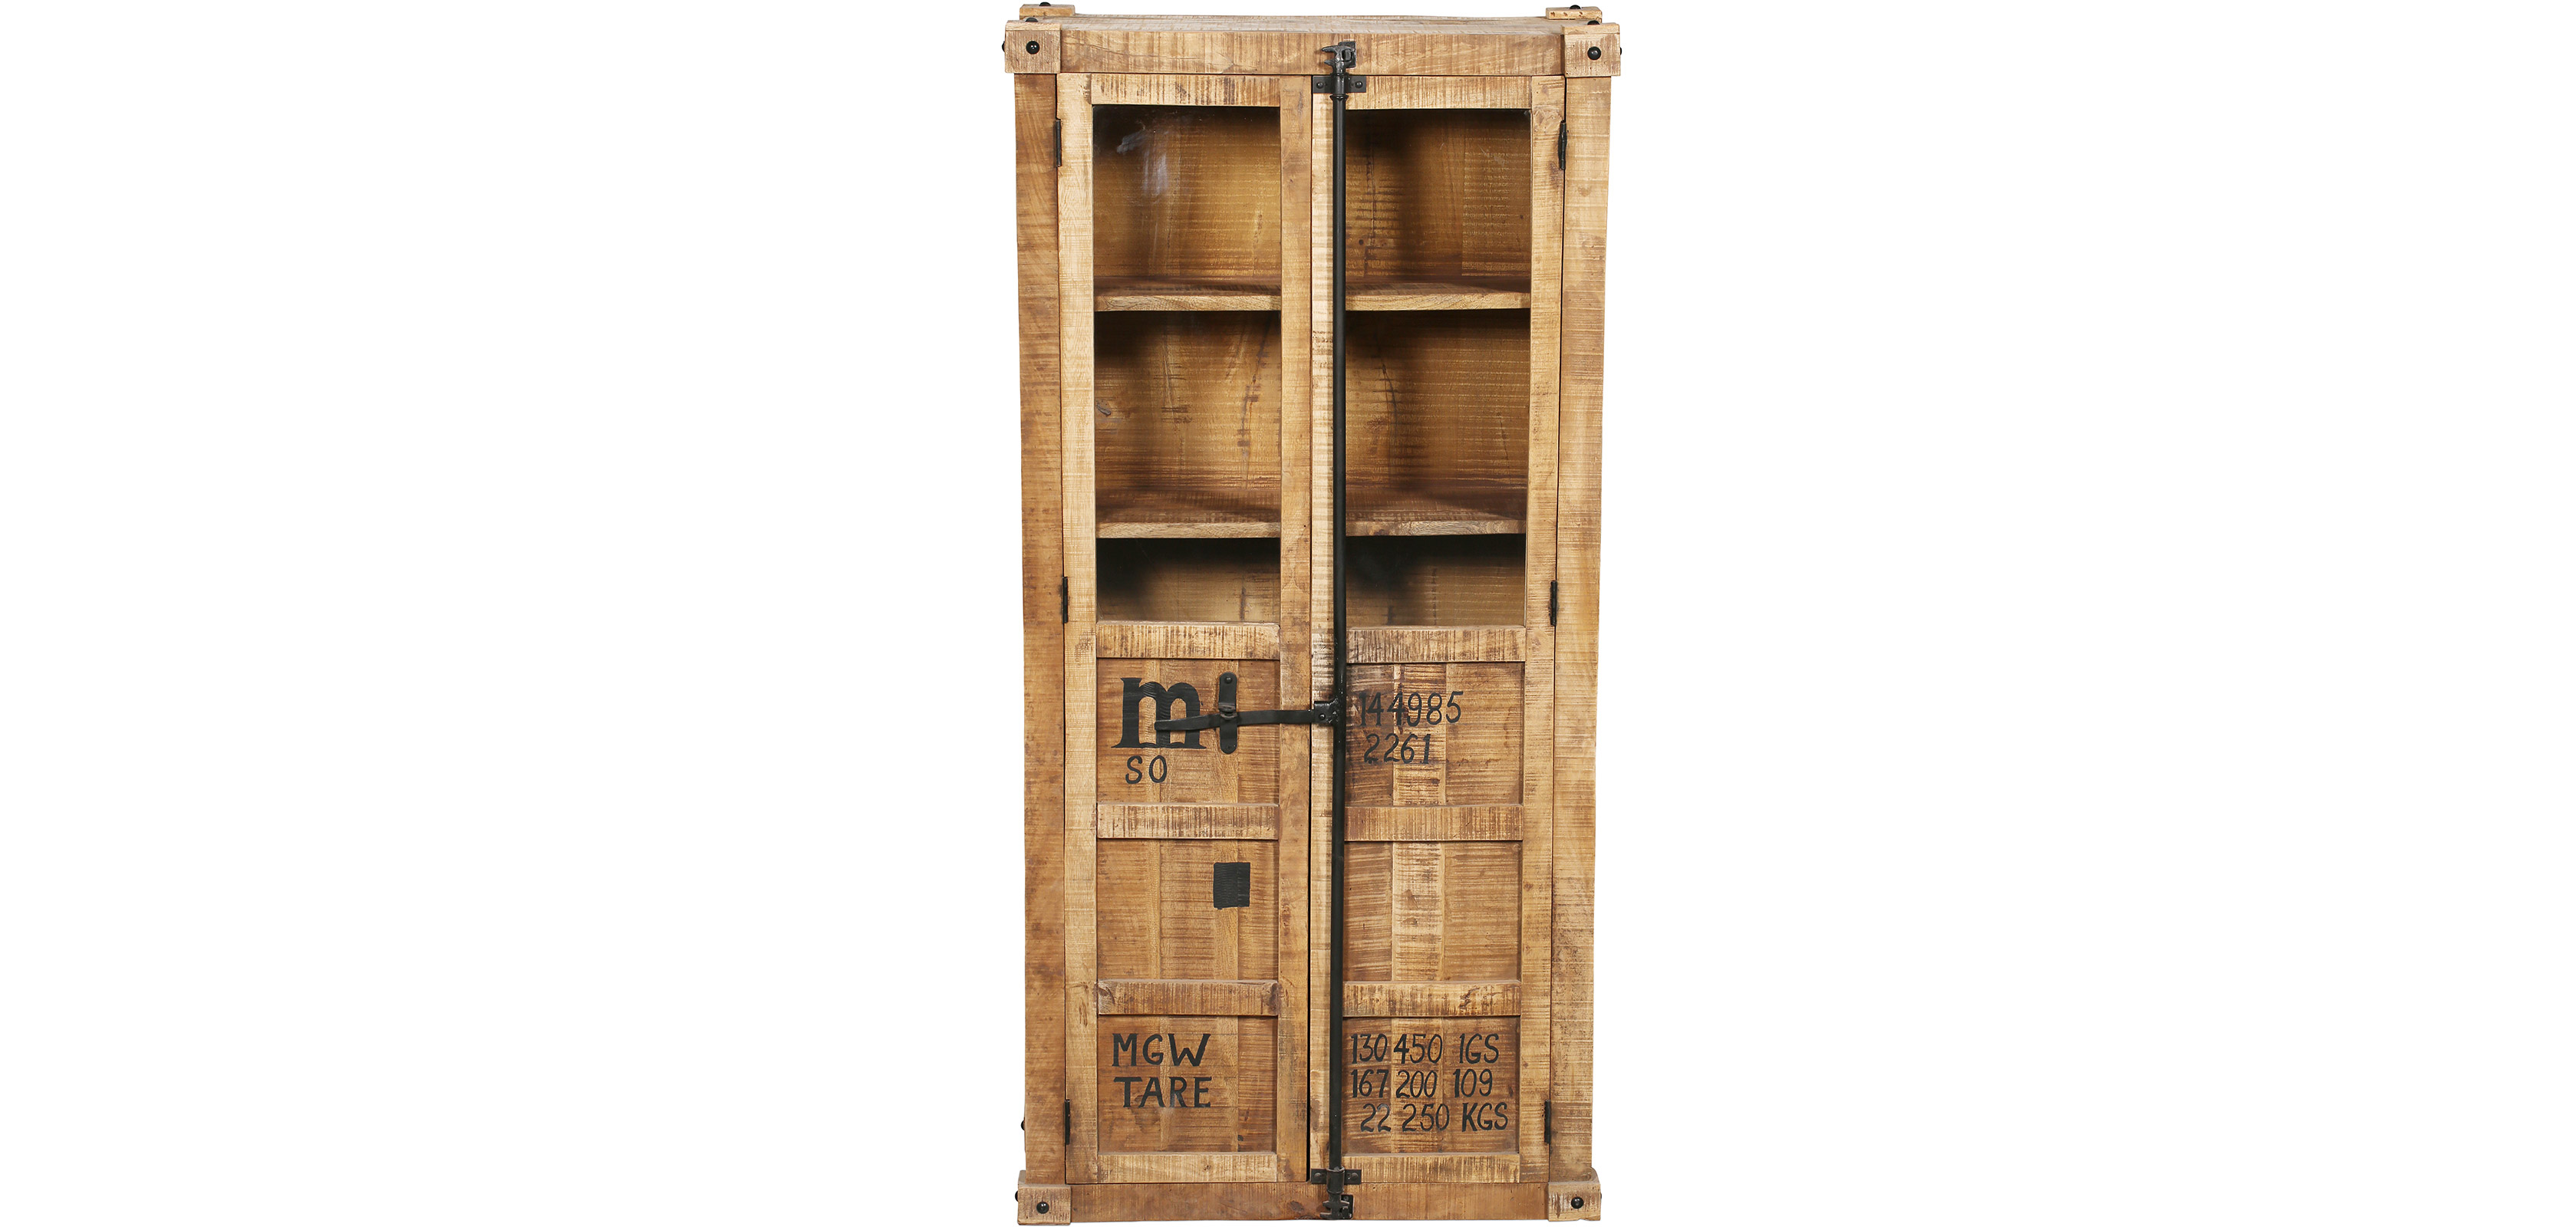 armoire en bois de manguier de style industriel. Black Bedroom Furniture Sets. Home Design Ideas